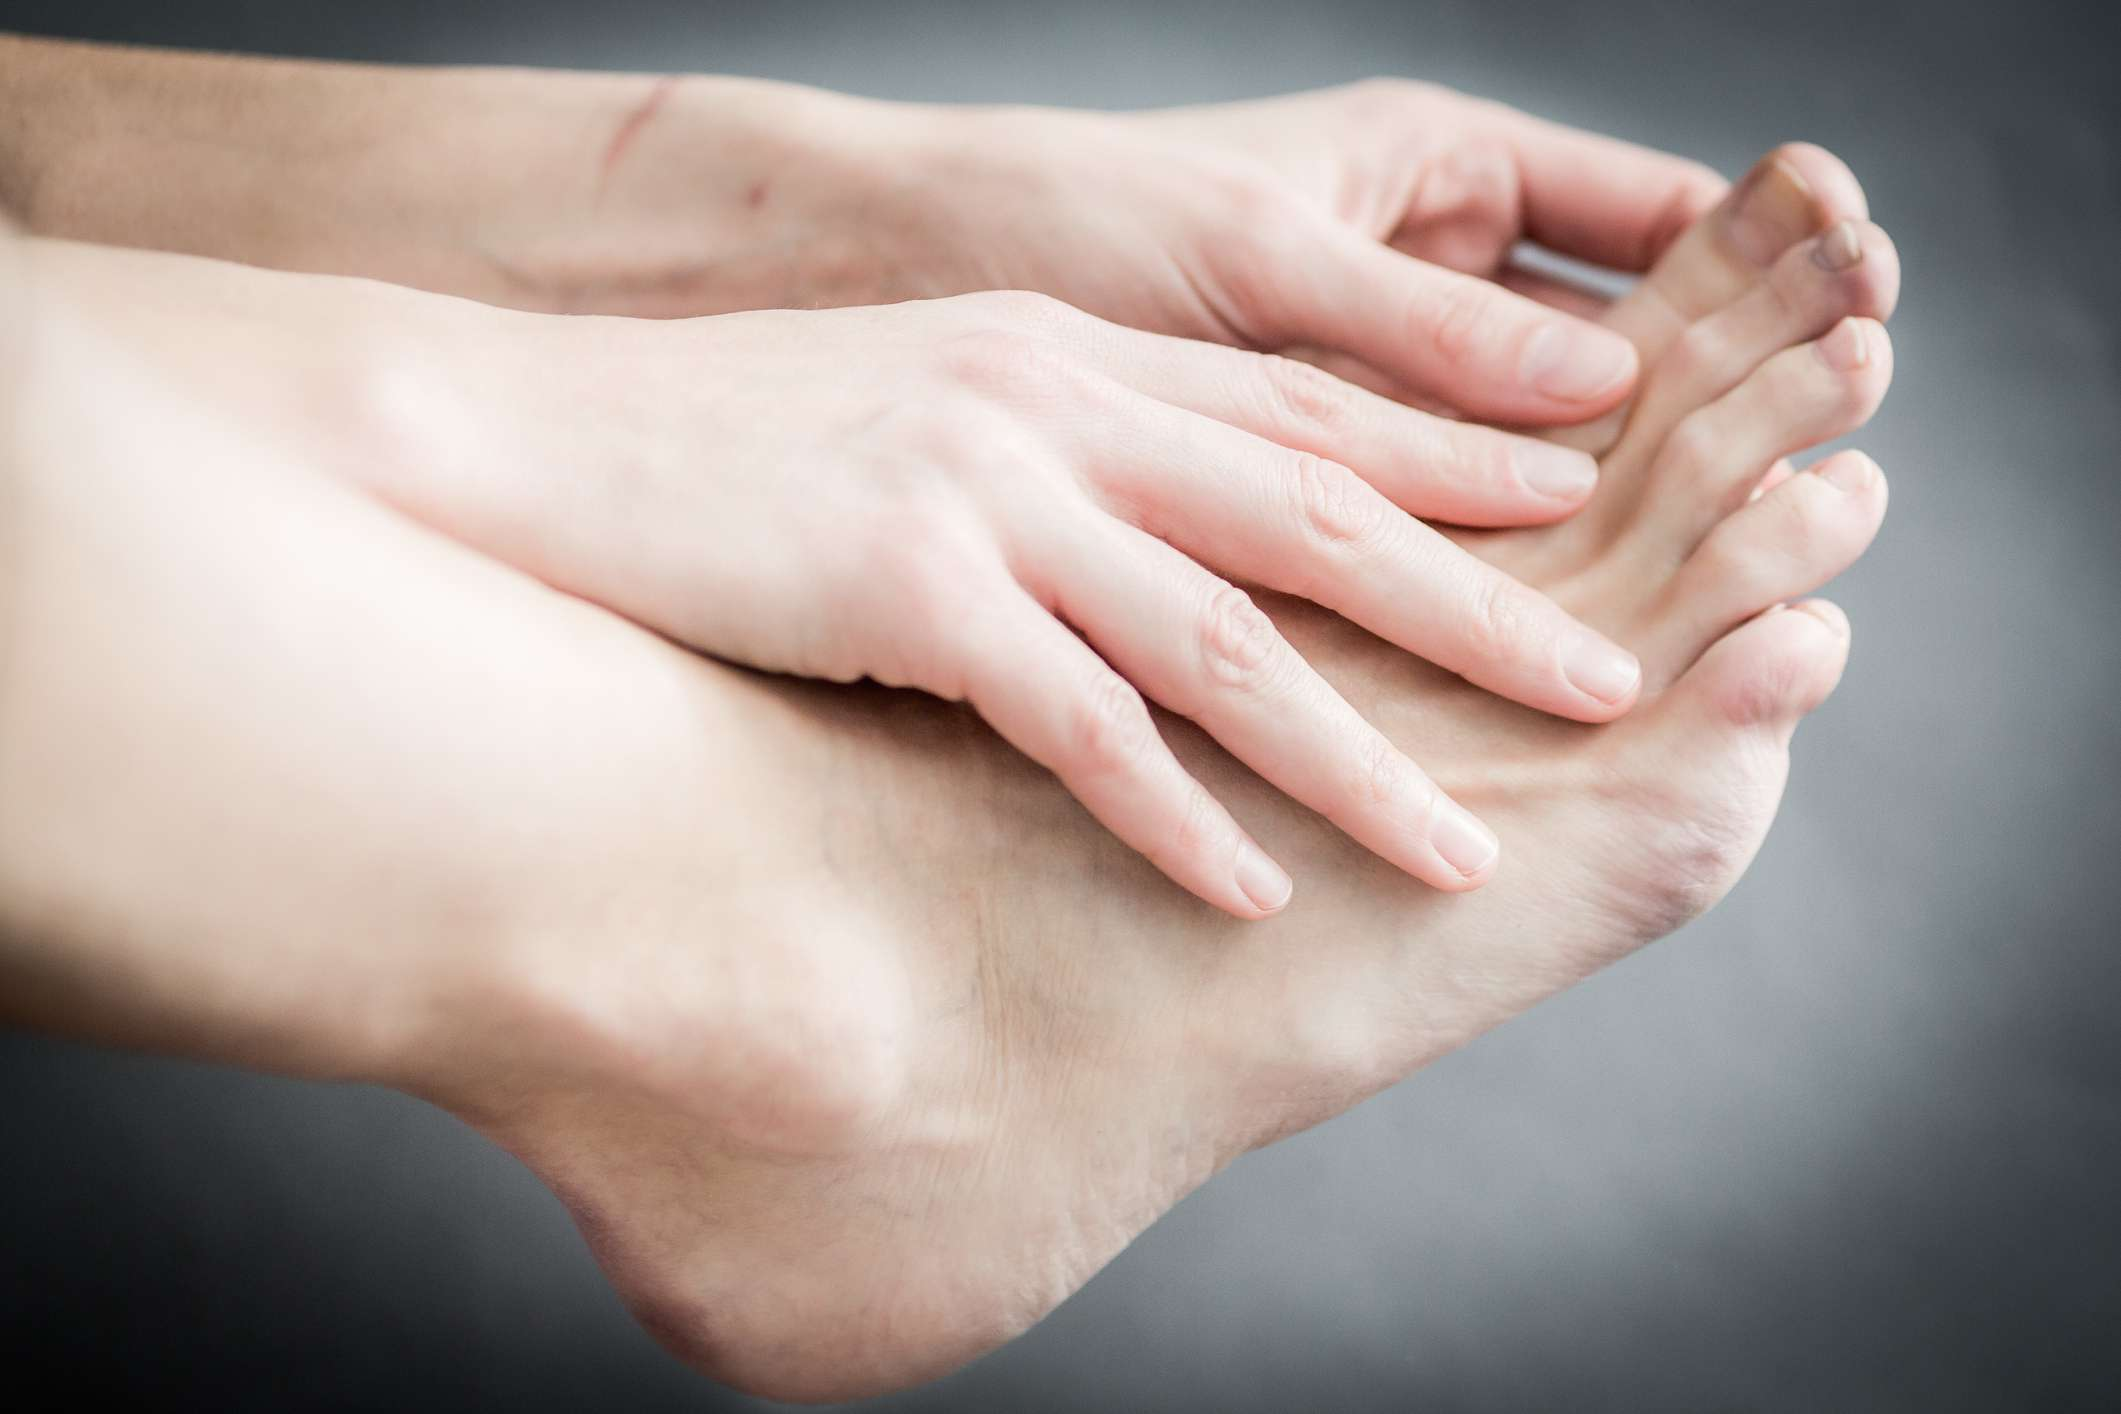 Close-up of person massaging their toe because of arthritis pain